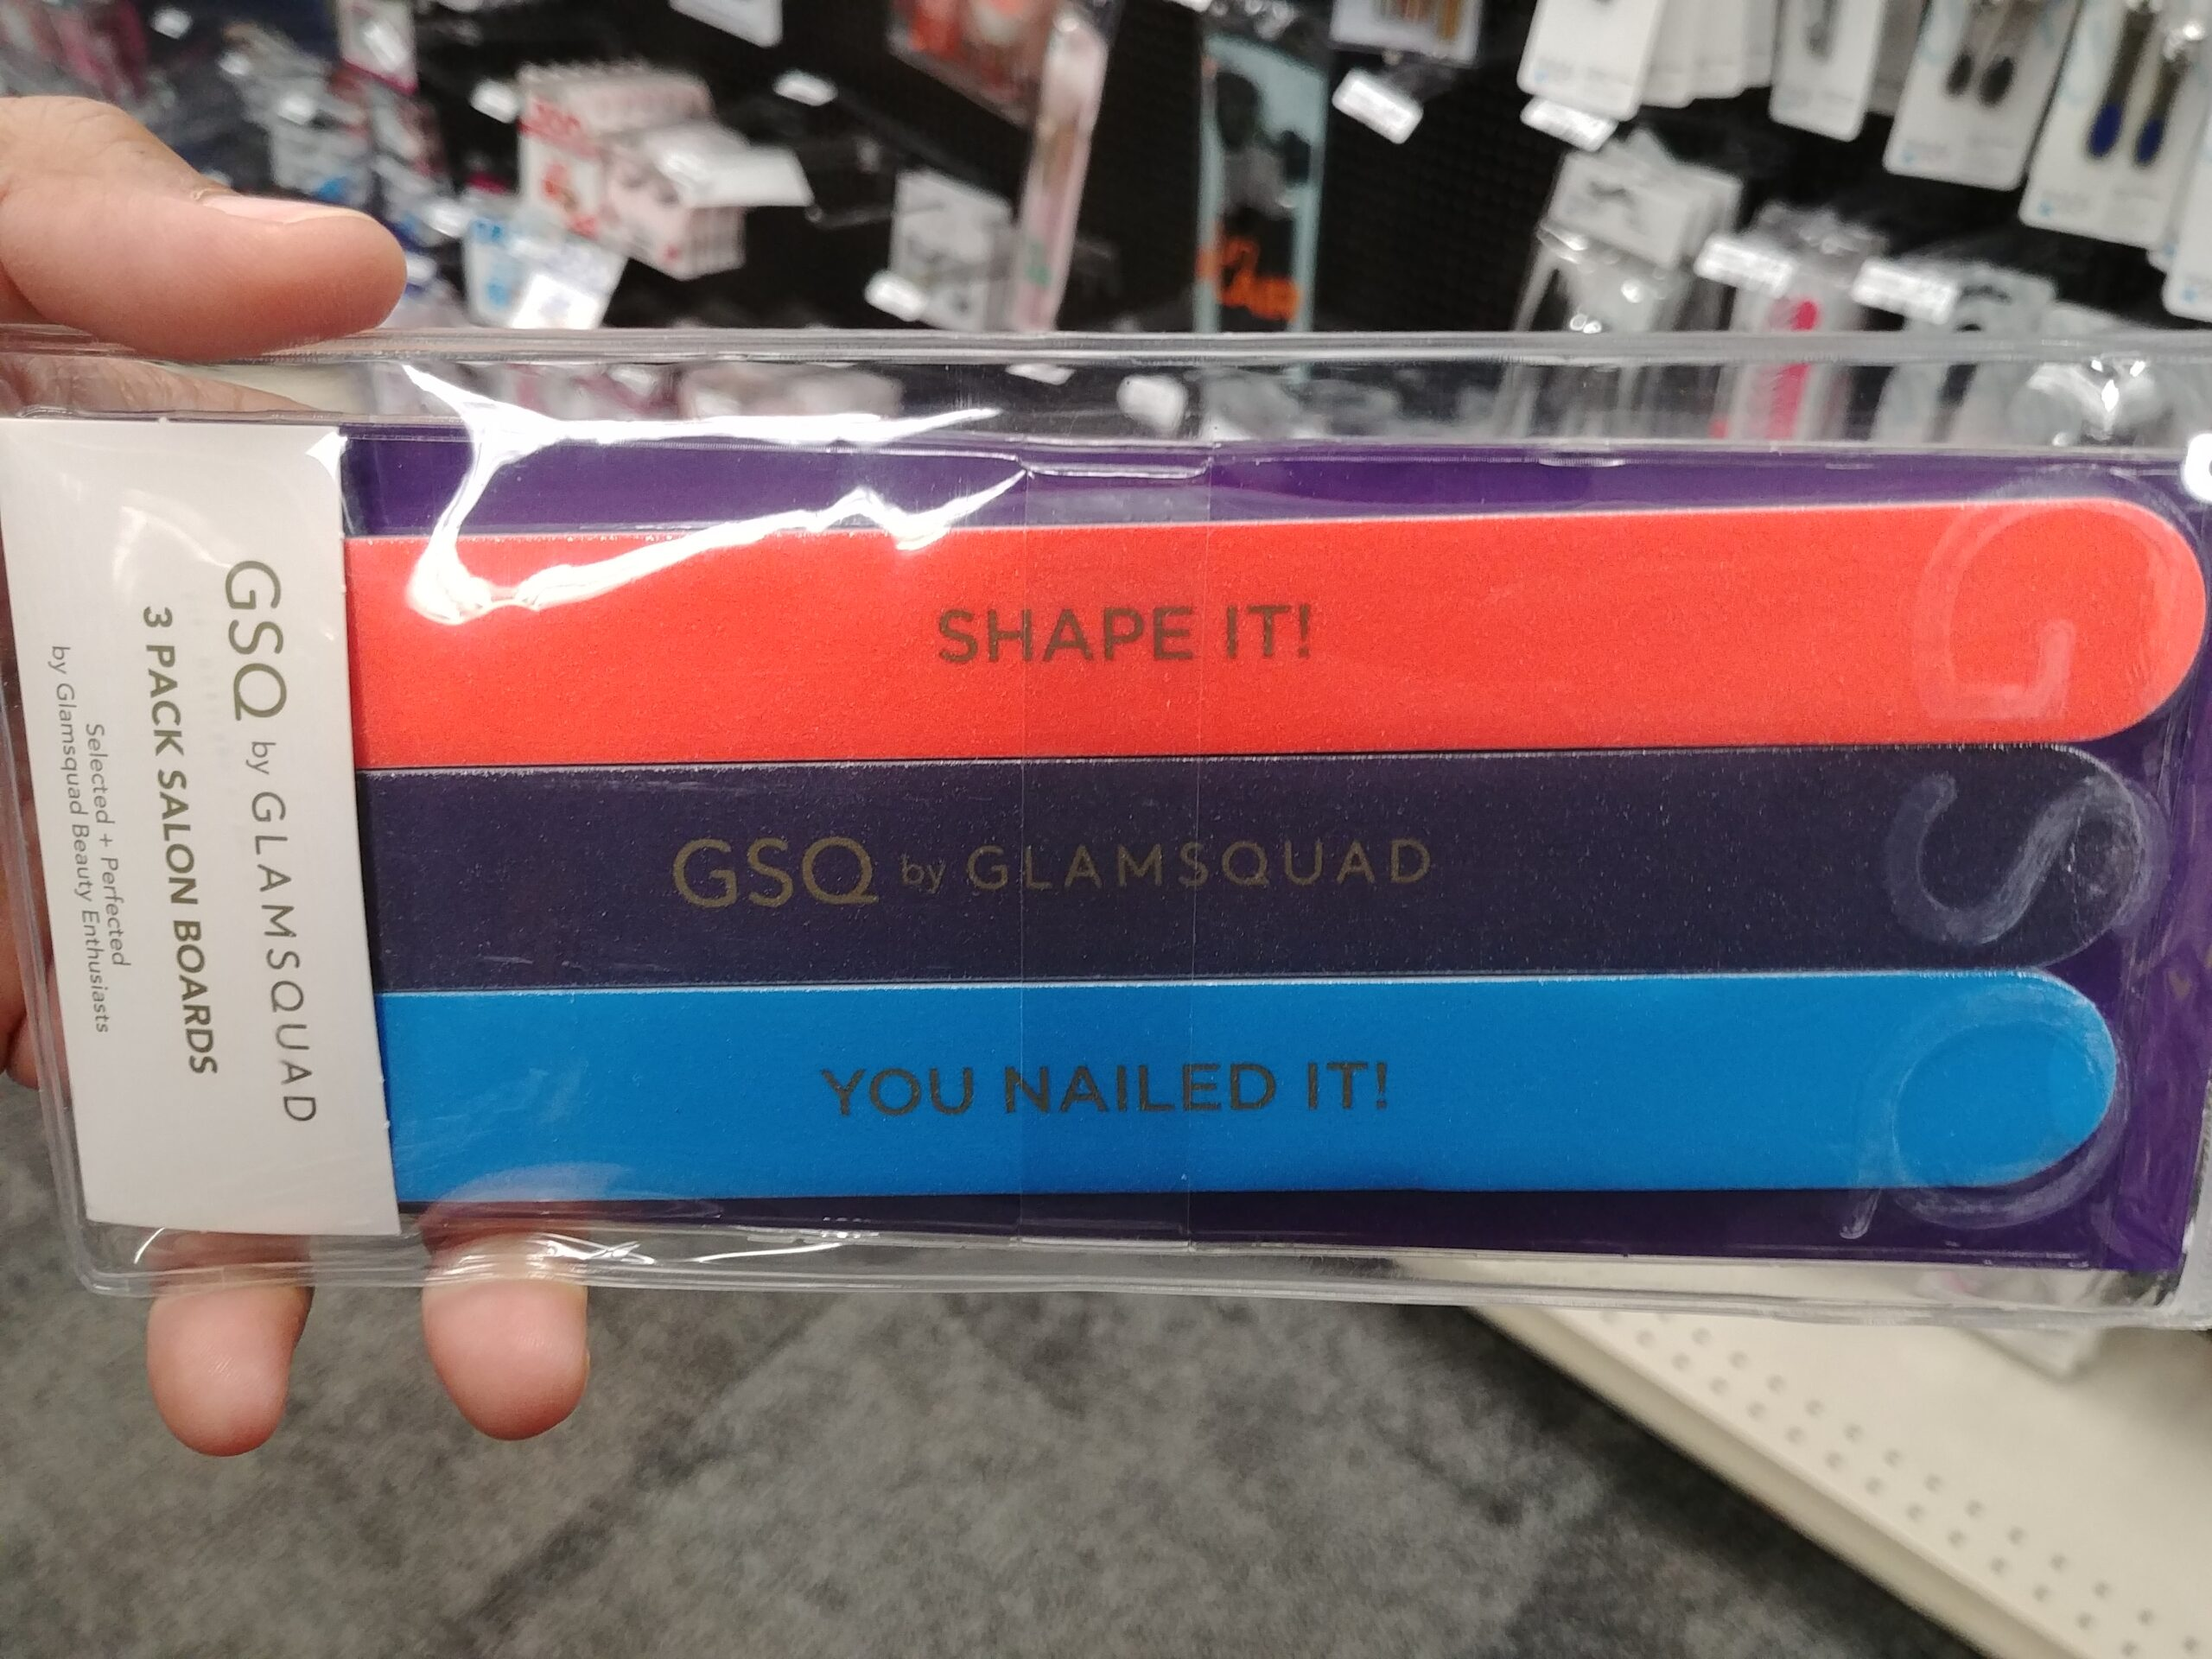 GSQ Nail Files at CVS